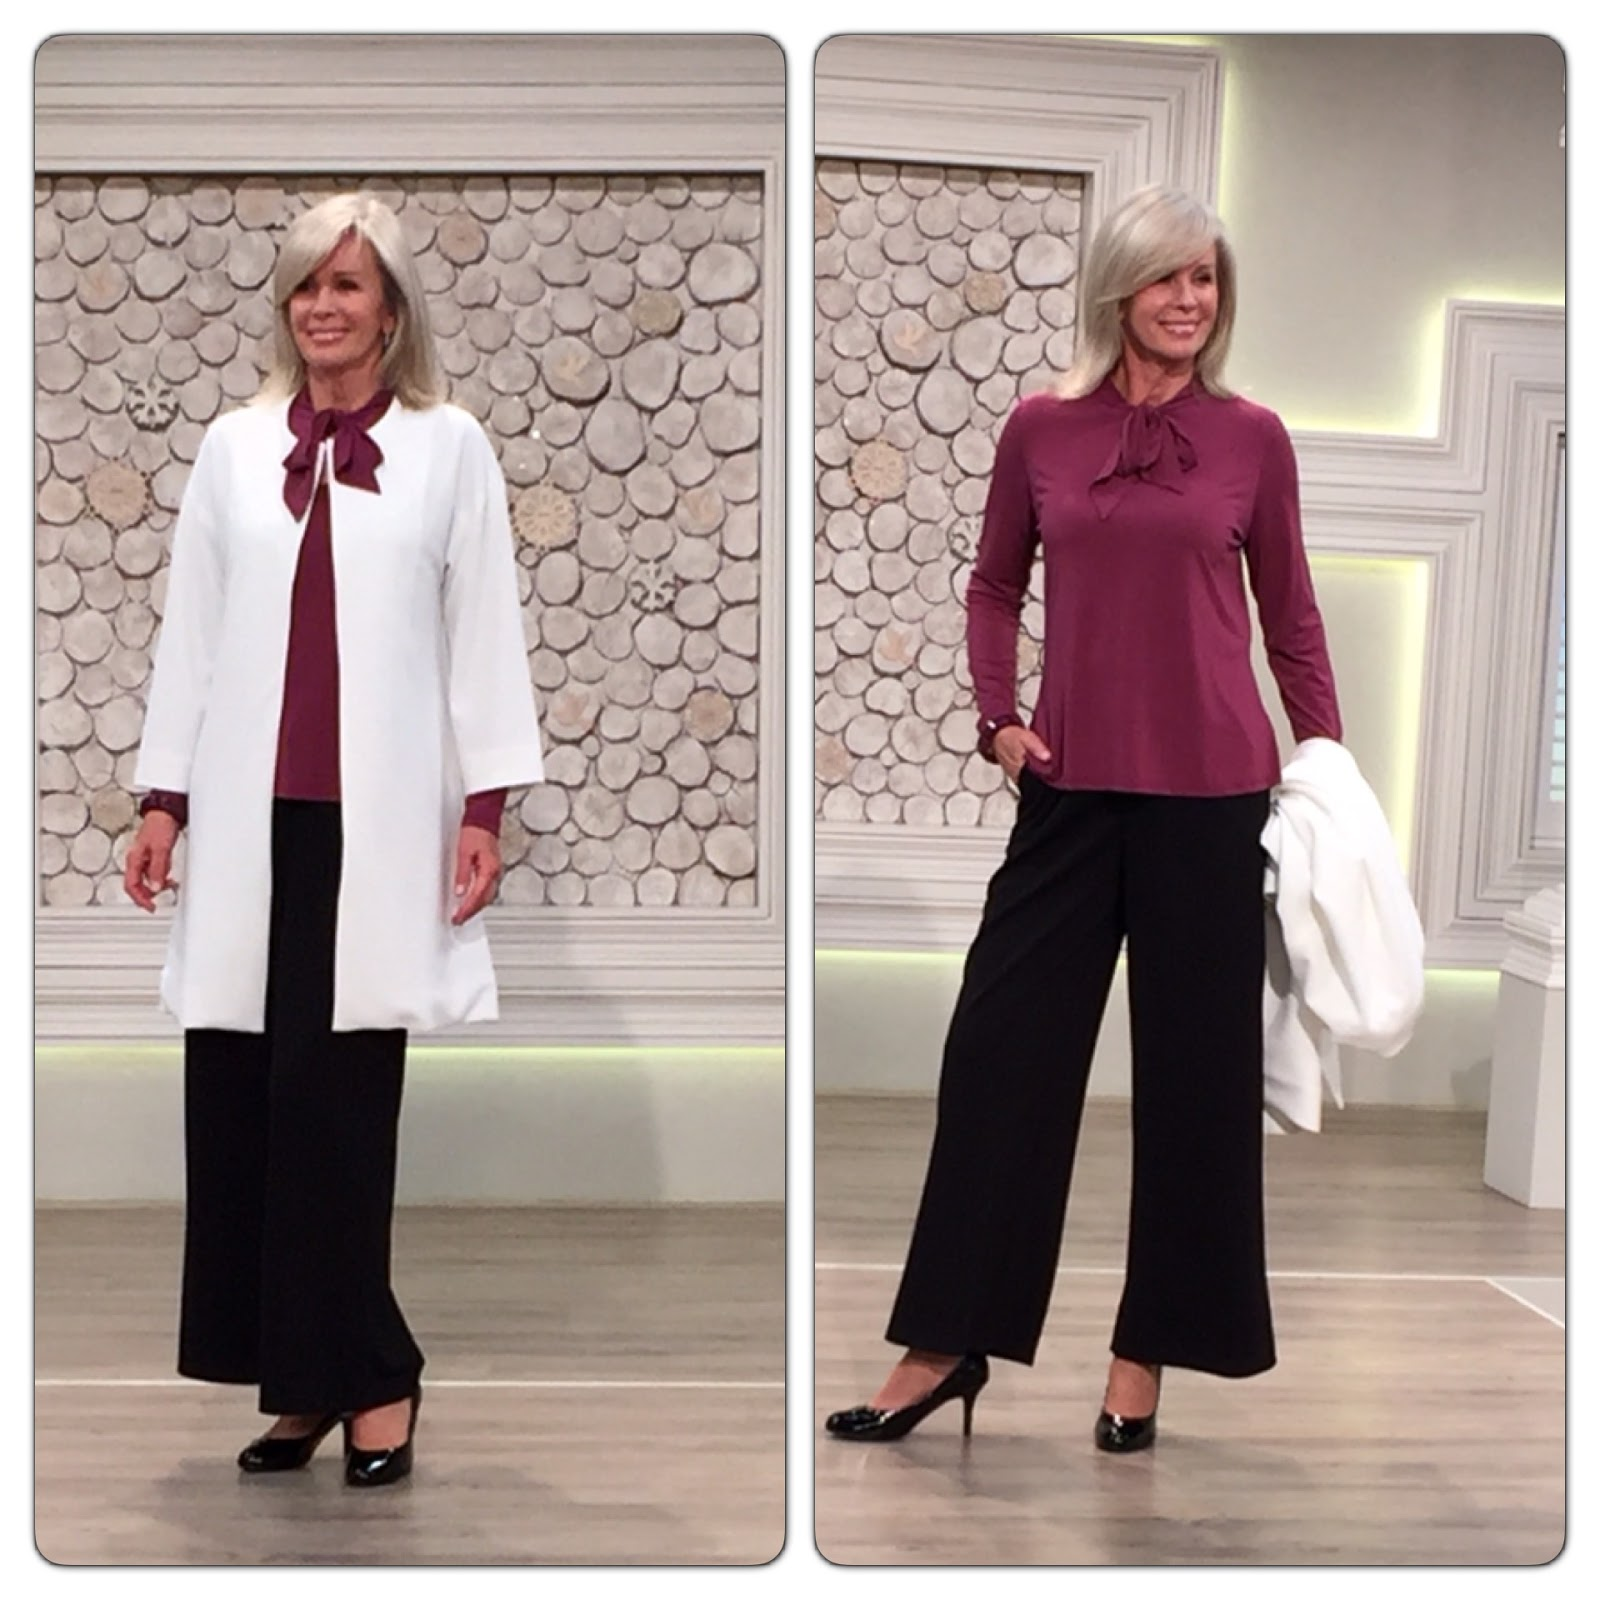 Nv nick verreosemiere on qvc uk lots of photos nick verreos model in nv nick verreos white car coat marsala colored tie neck blouse textured knit wide leg trousers and fashion illustration by nick verreos nv ccuart Gallery